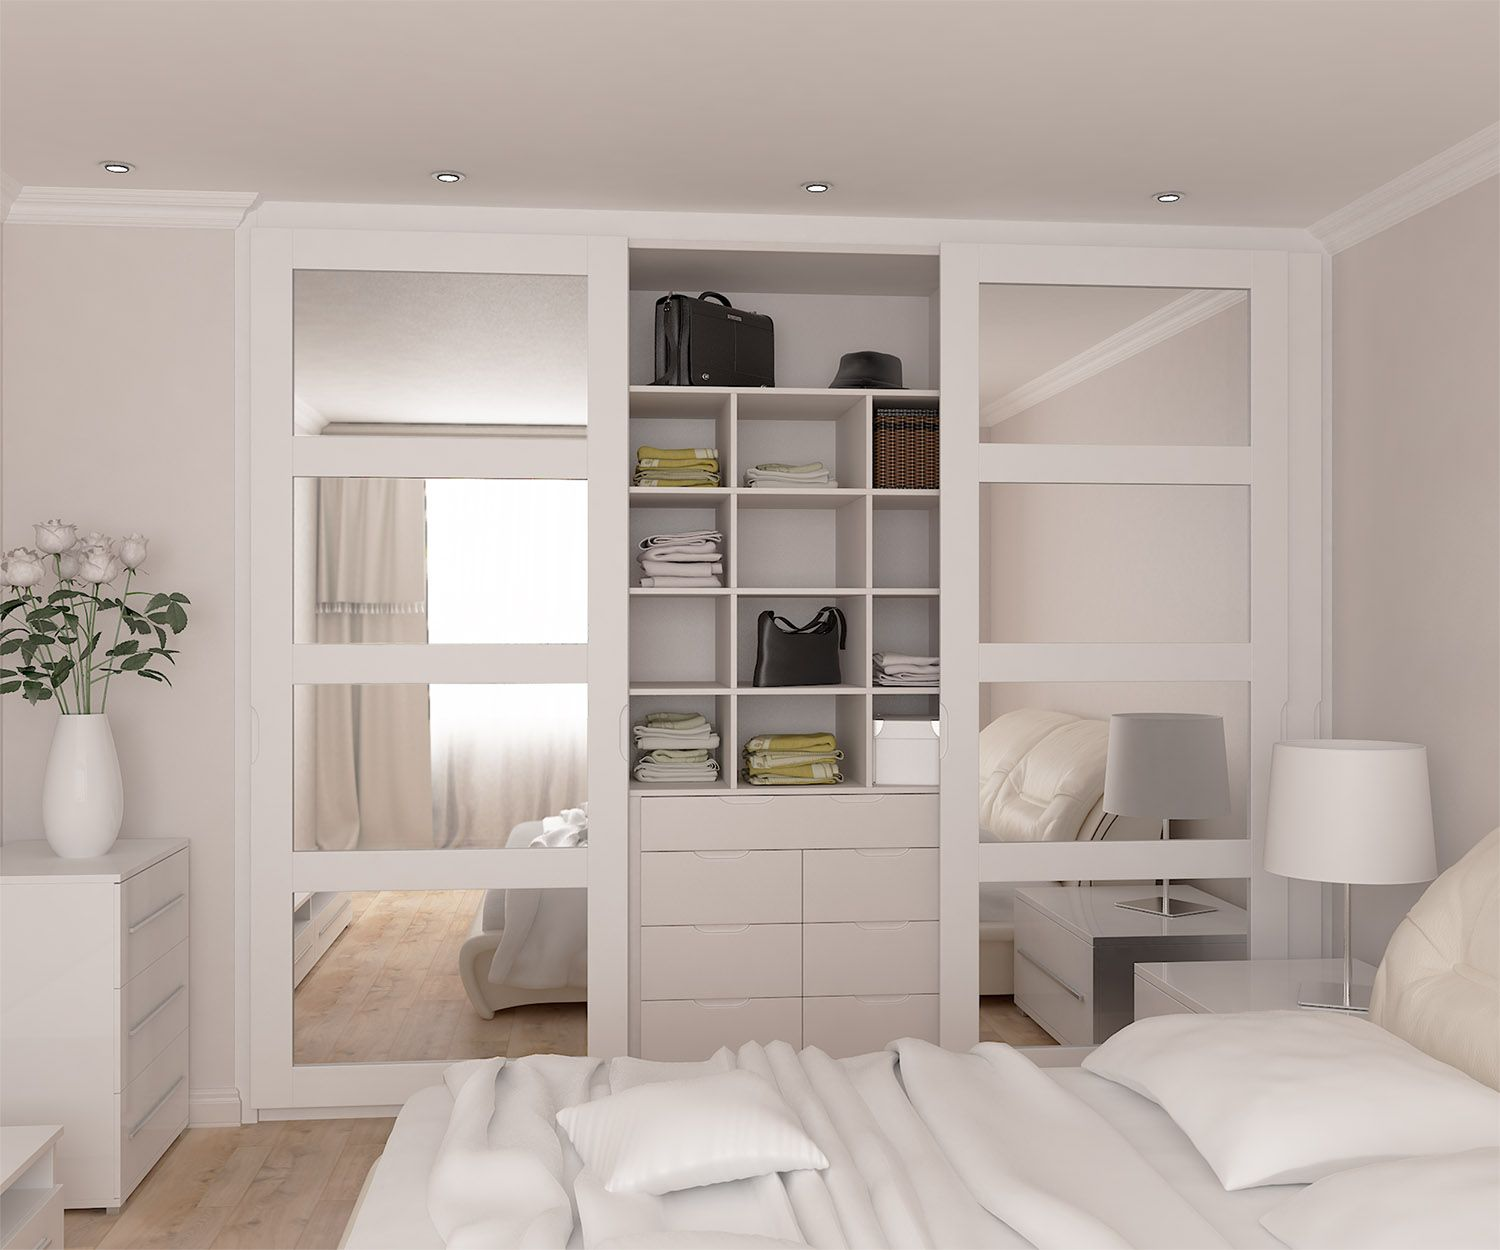 How To Make Built In Wardrobes With Sliding Doors: The 25+ Best Fitted Sliding Wardrobes Ideas On Pinterest